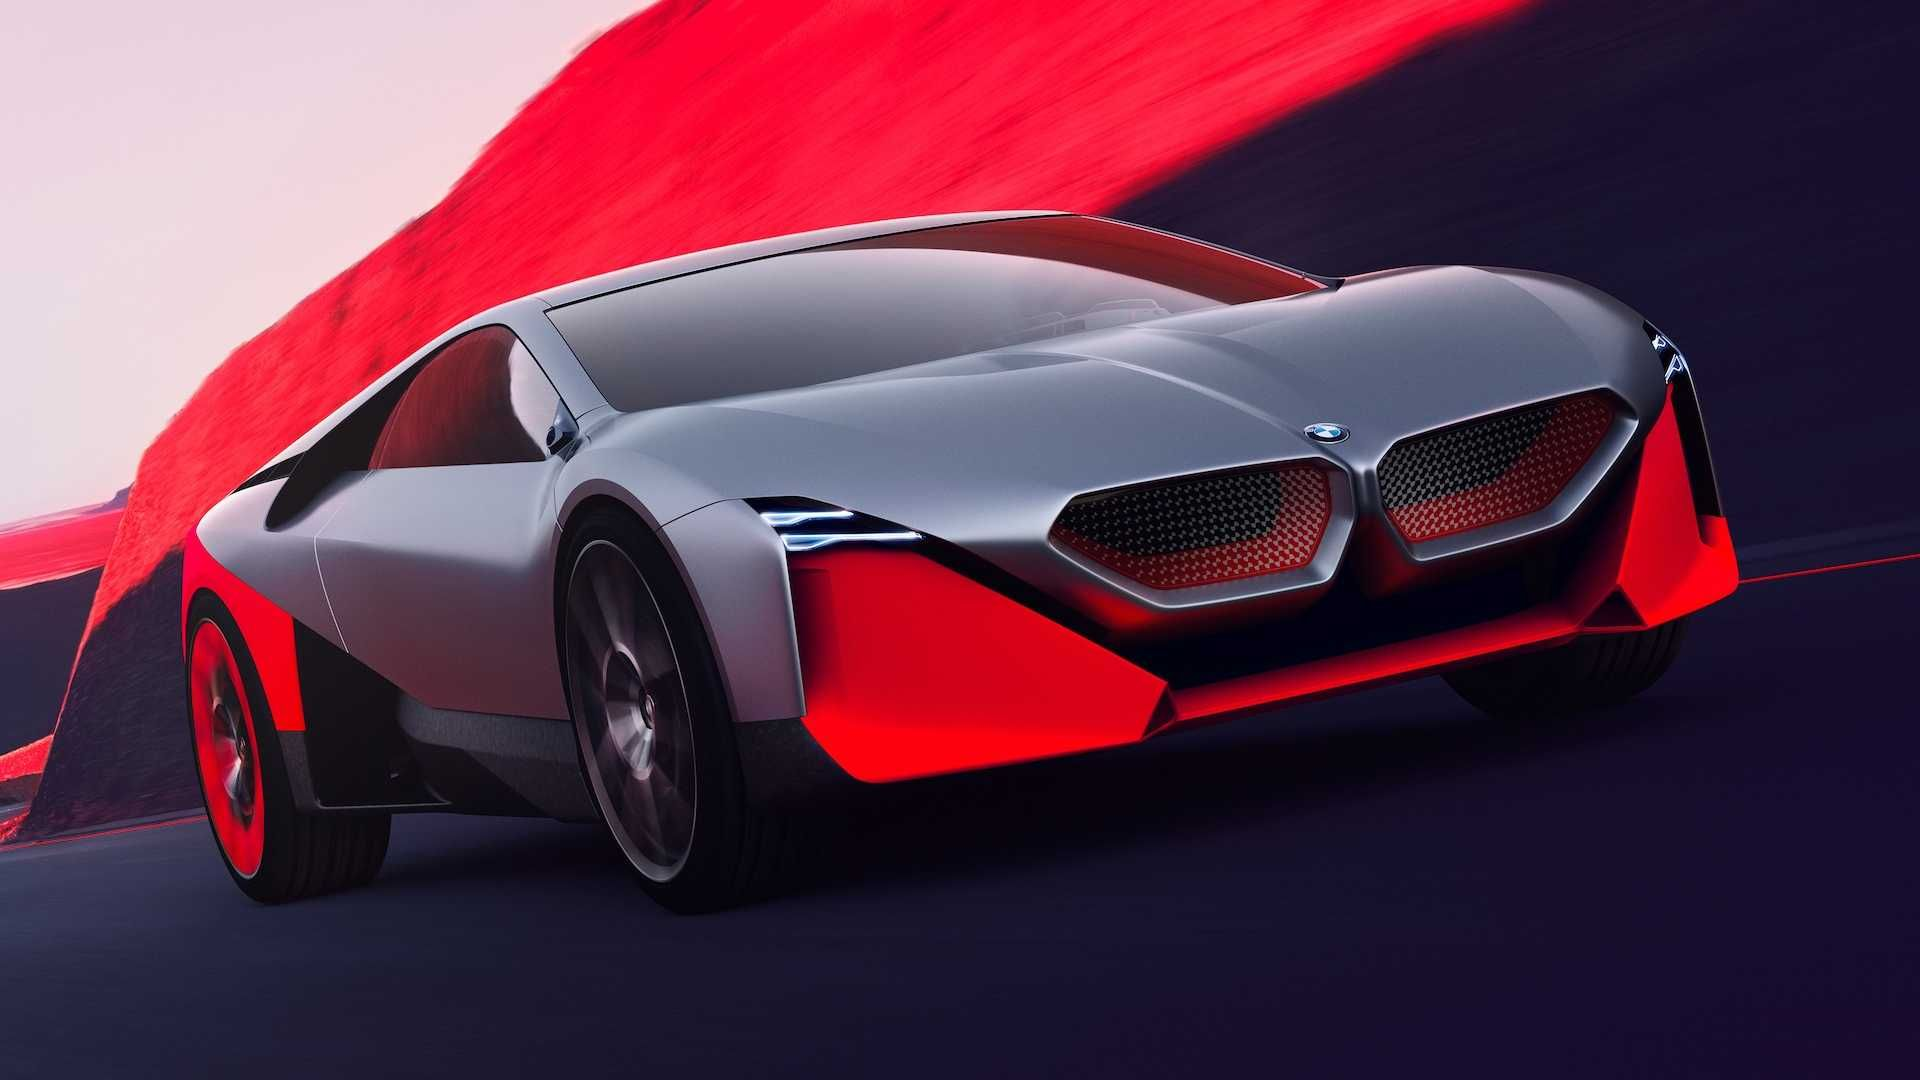 Bmw Vision M Concept Is A Stunning And Futuristic M1 Bmw Hybrid Bmw Super Cars